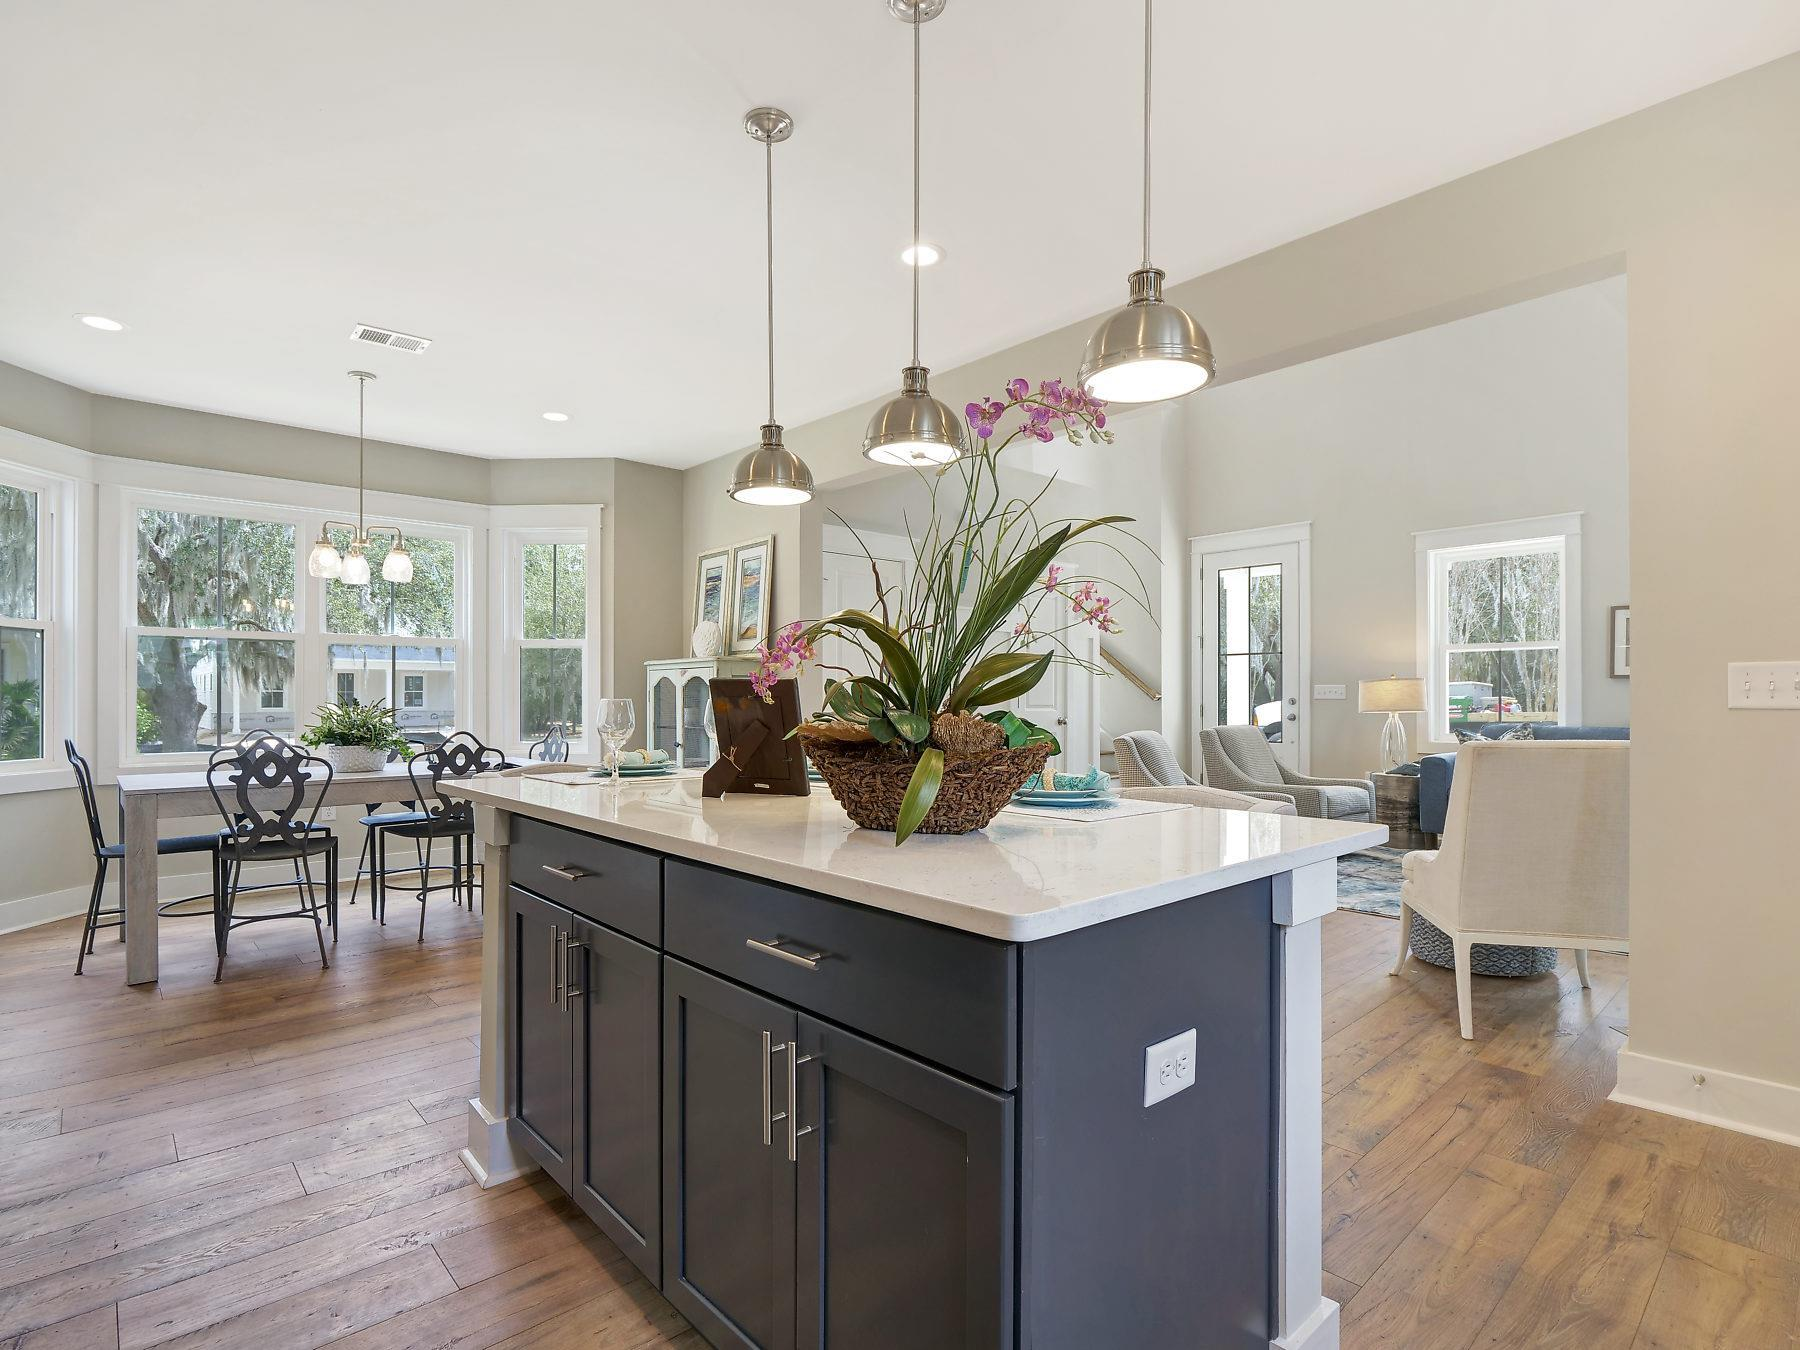 Living Area featured in The Ashley River II By Village Park Homes in Savannah, SC